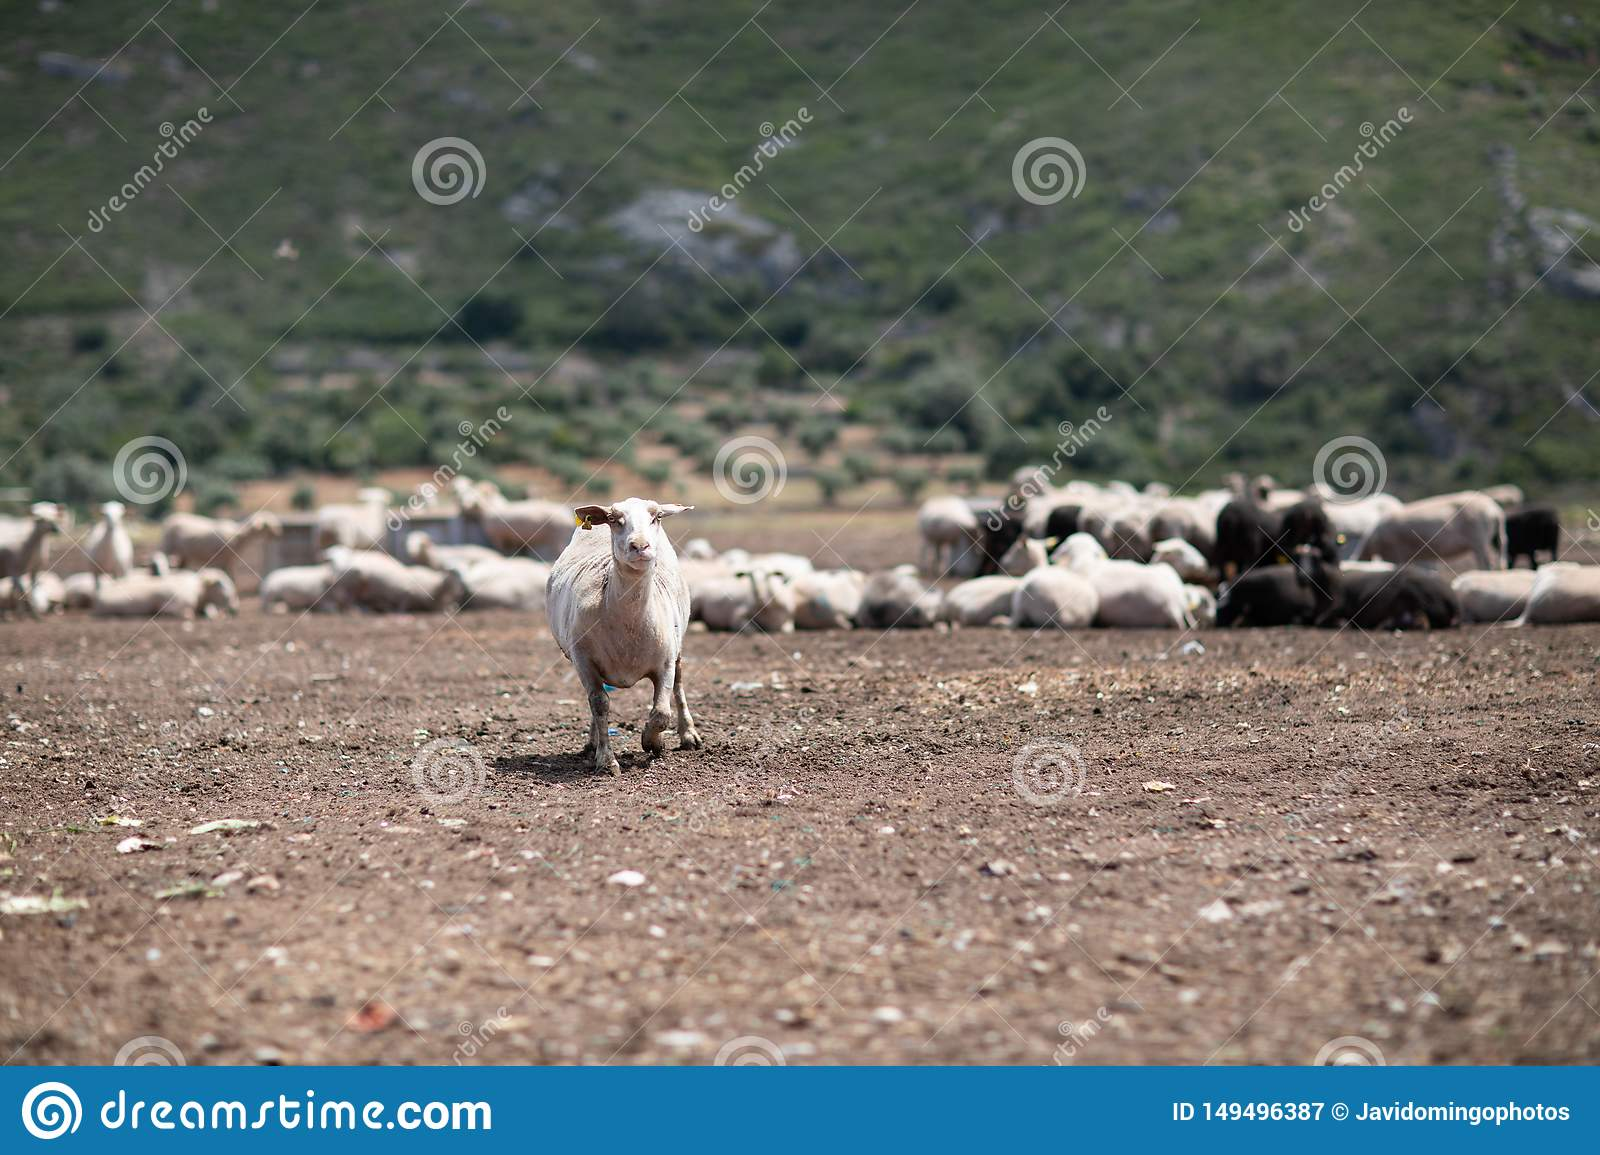 Flock of sheep in the field